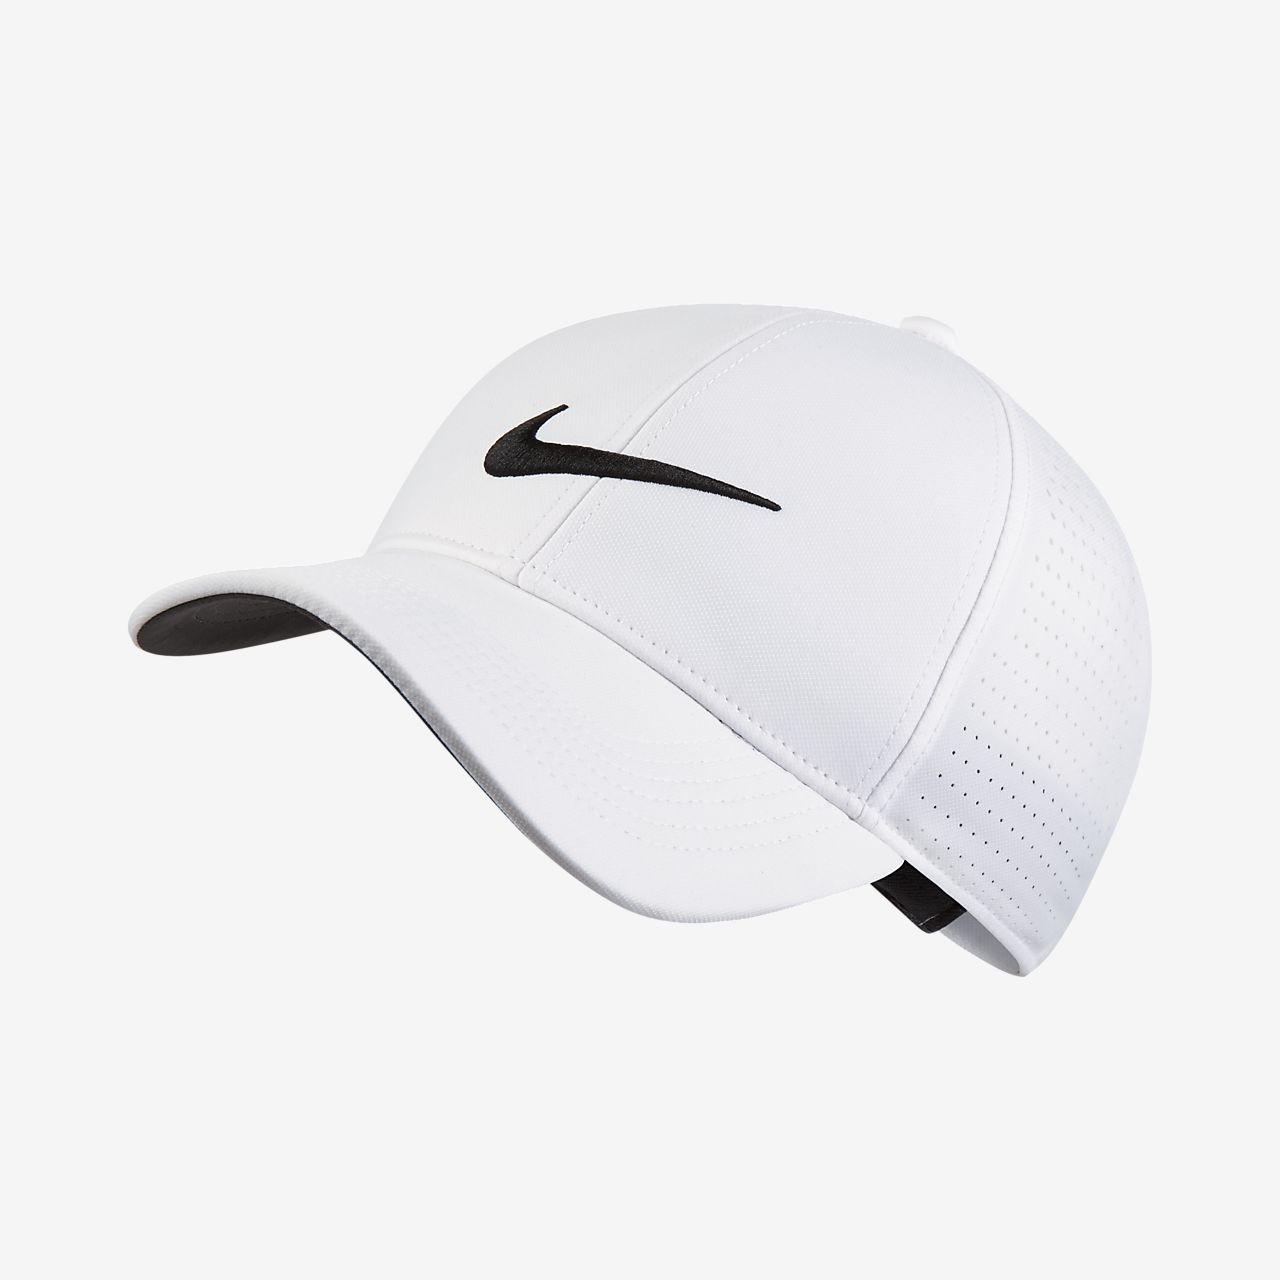 7553911e4d5a3 Nike Legacy 91 Perforated Adjustable Golf Hat. Nike.com